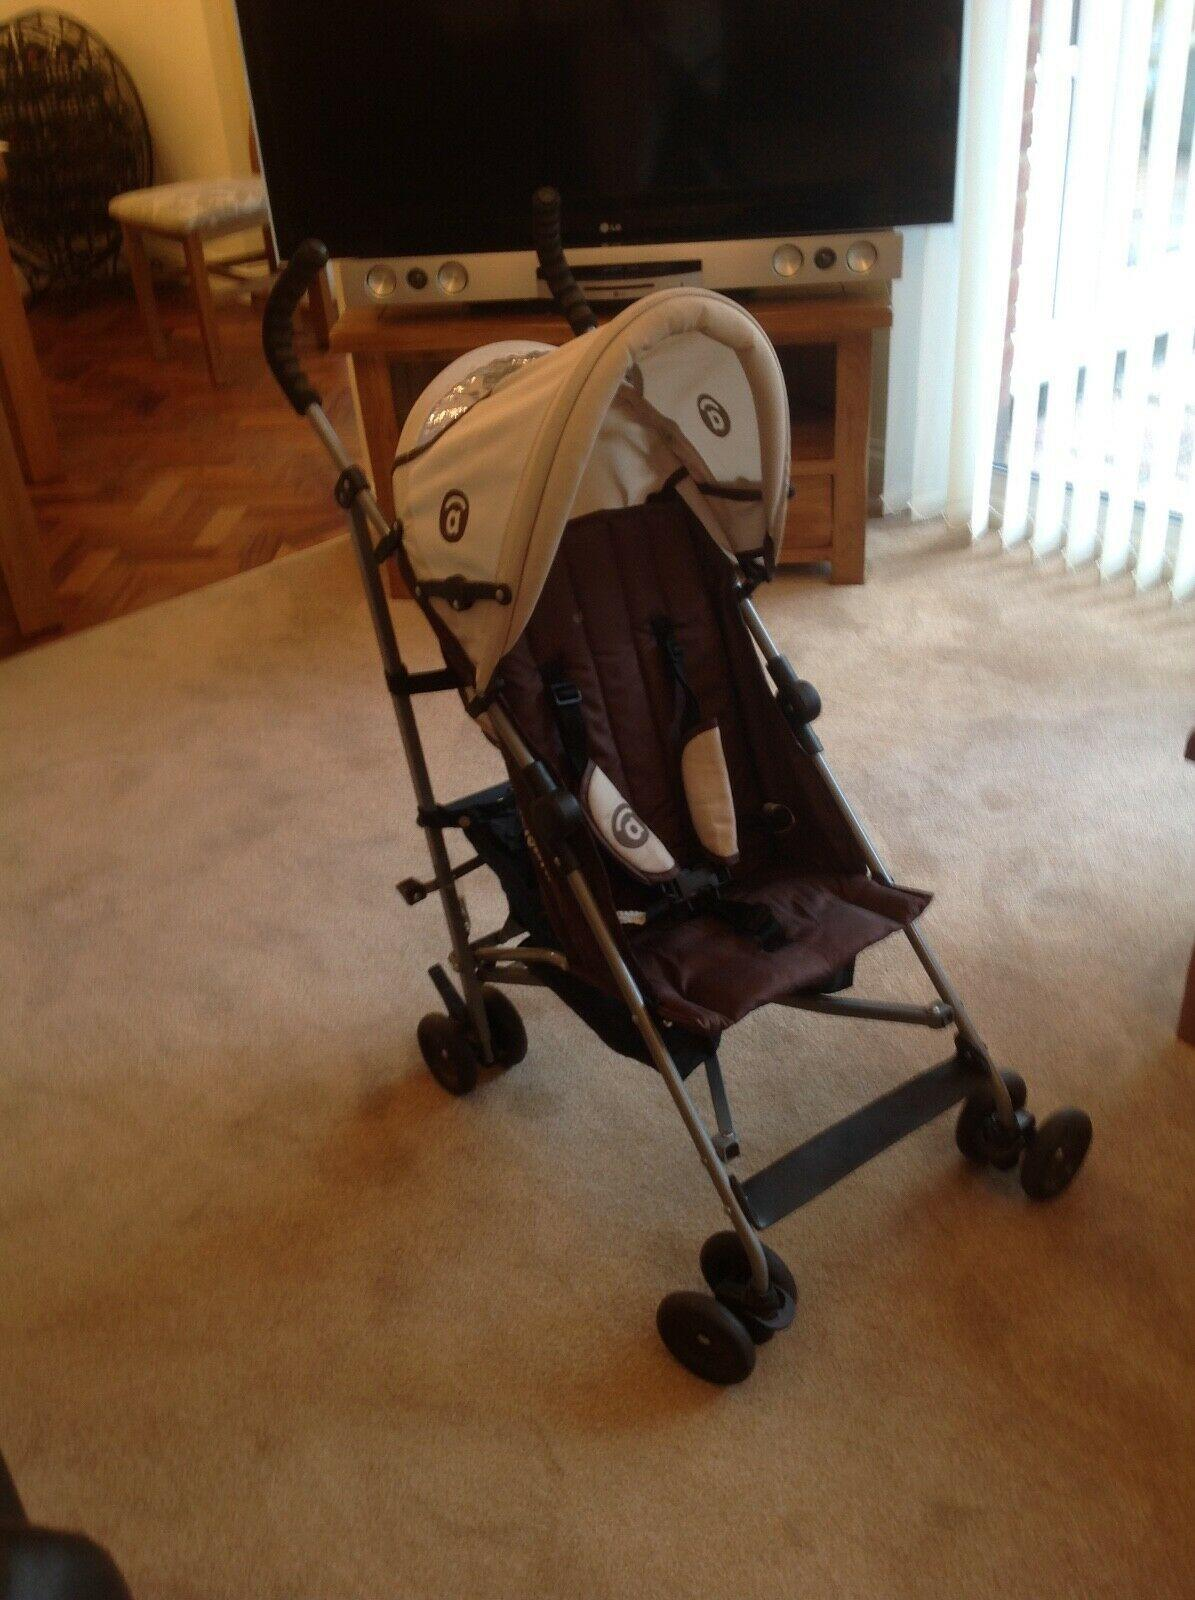 Pushchair Stroller Buggy, Brown and Beige, Great condition